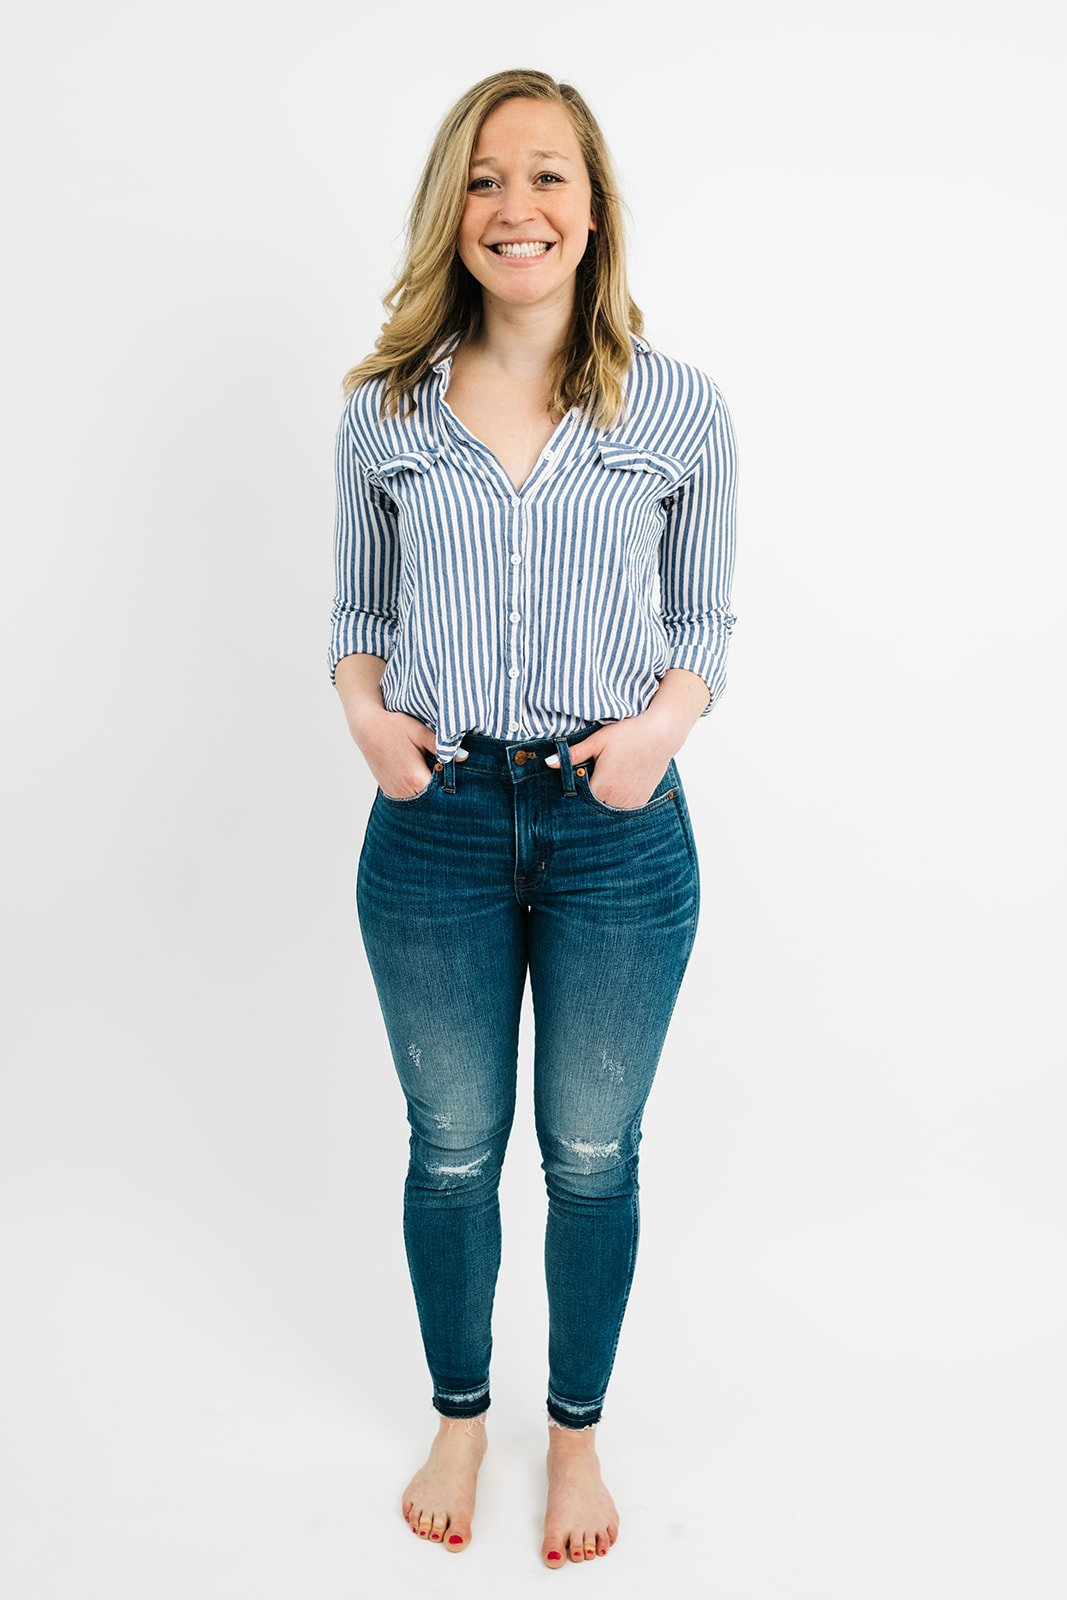 blonde woman in jeans and a blue striped button down shirt